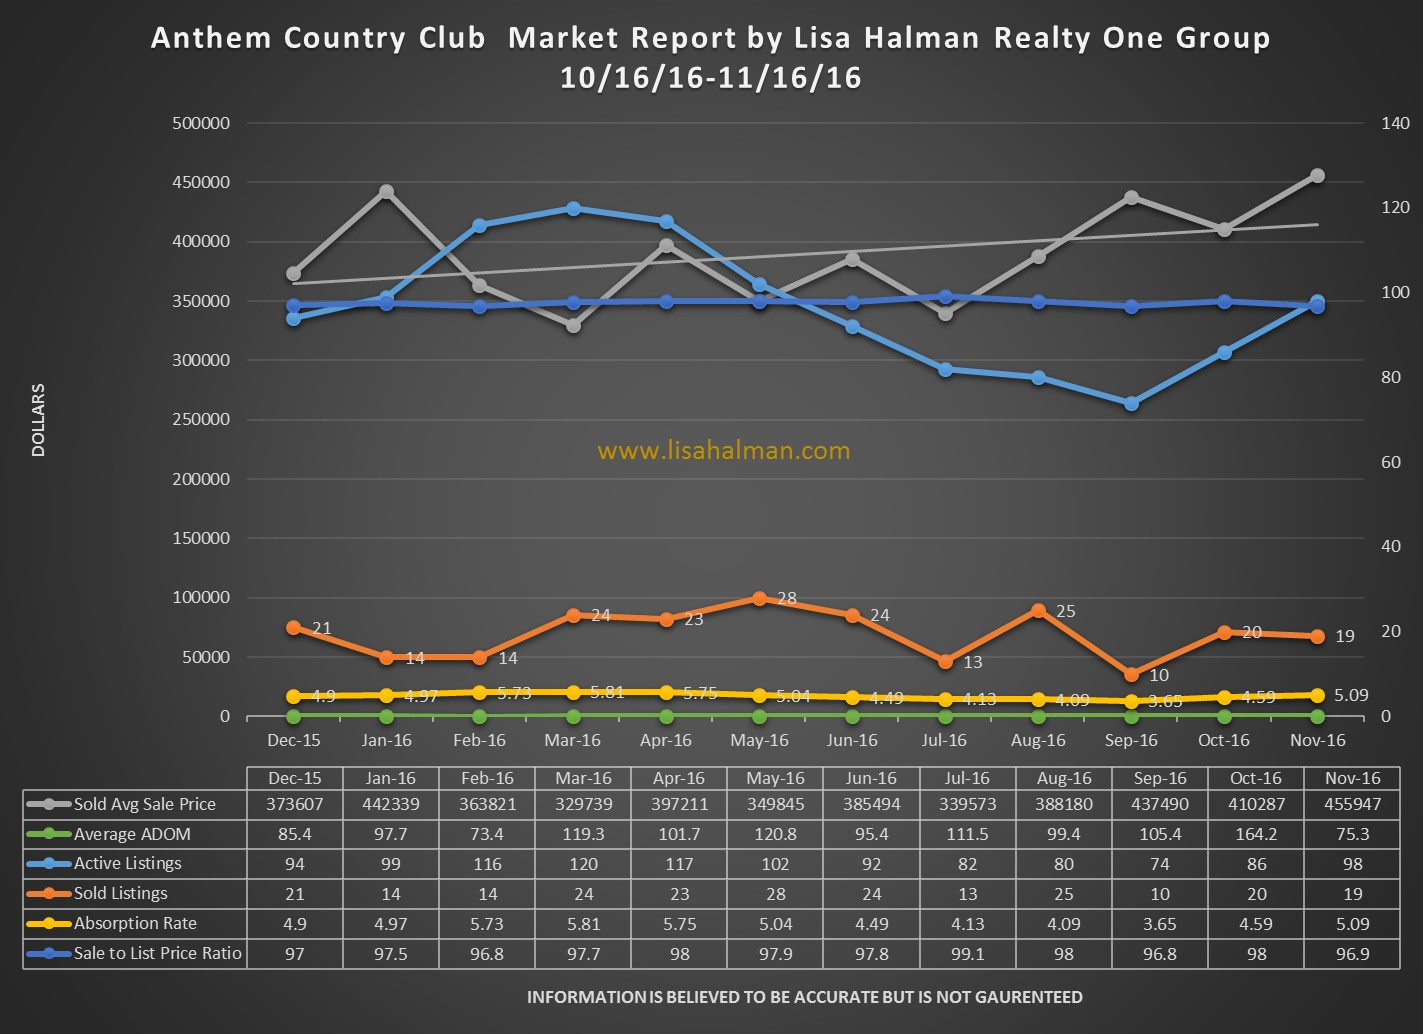 Anthem Country Club Market Report November 2016